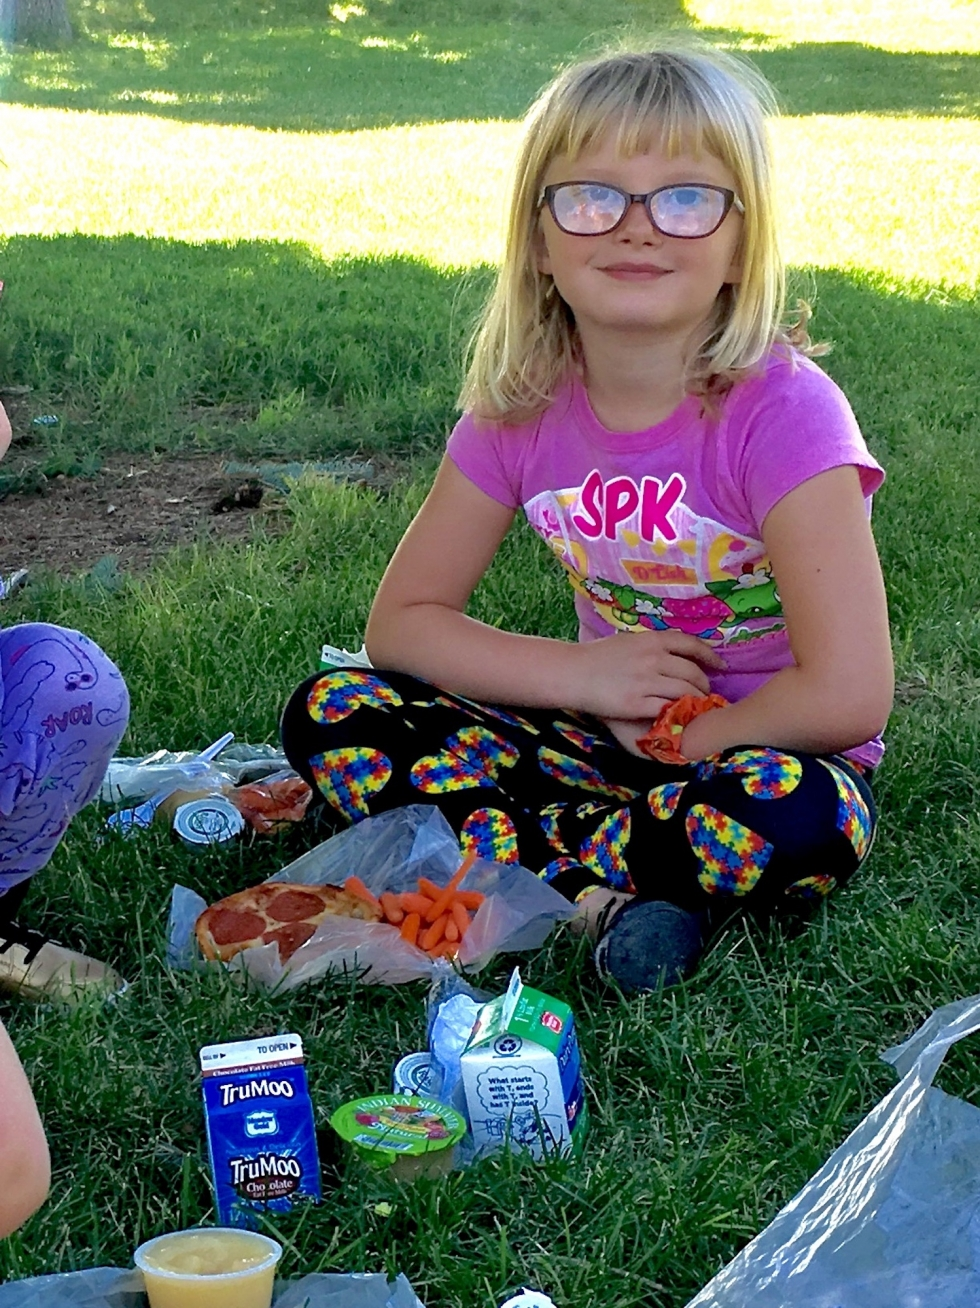 Rayme, age 6, happily eats her free lunch of pizza, veggies, applesauce and milk, in the shade at Sherwood Park on July 1.